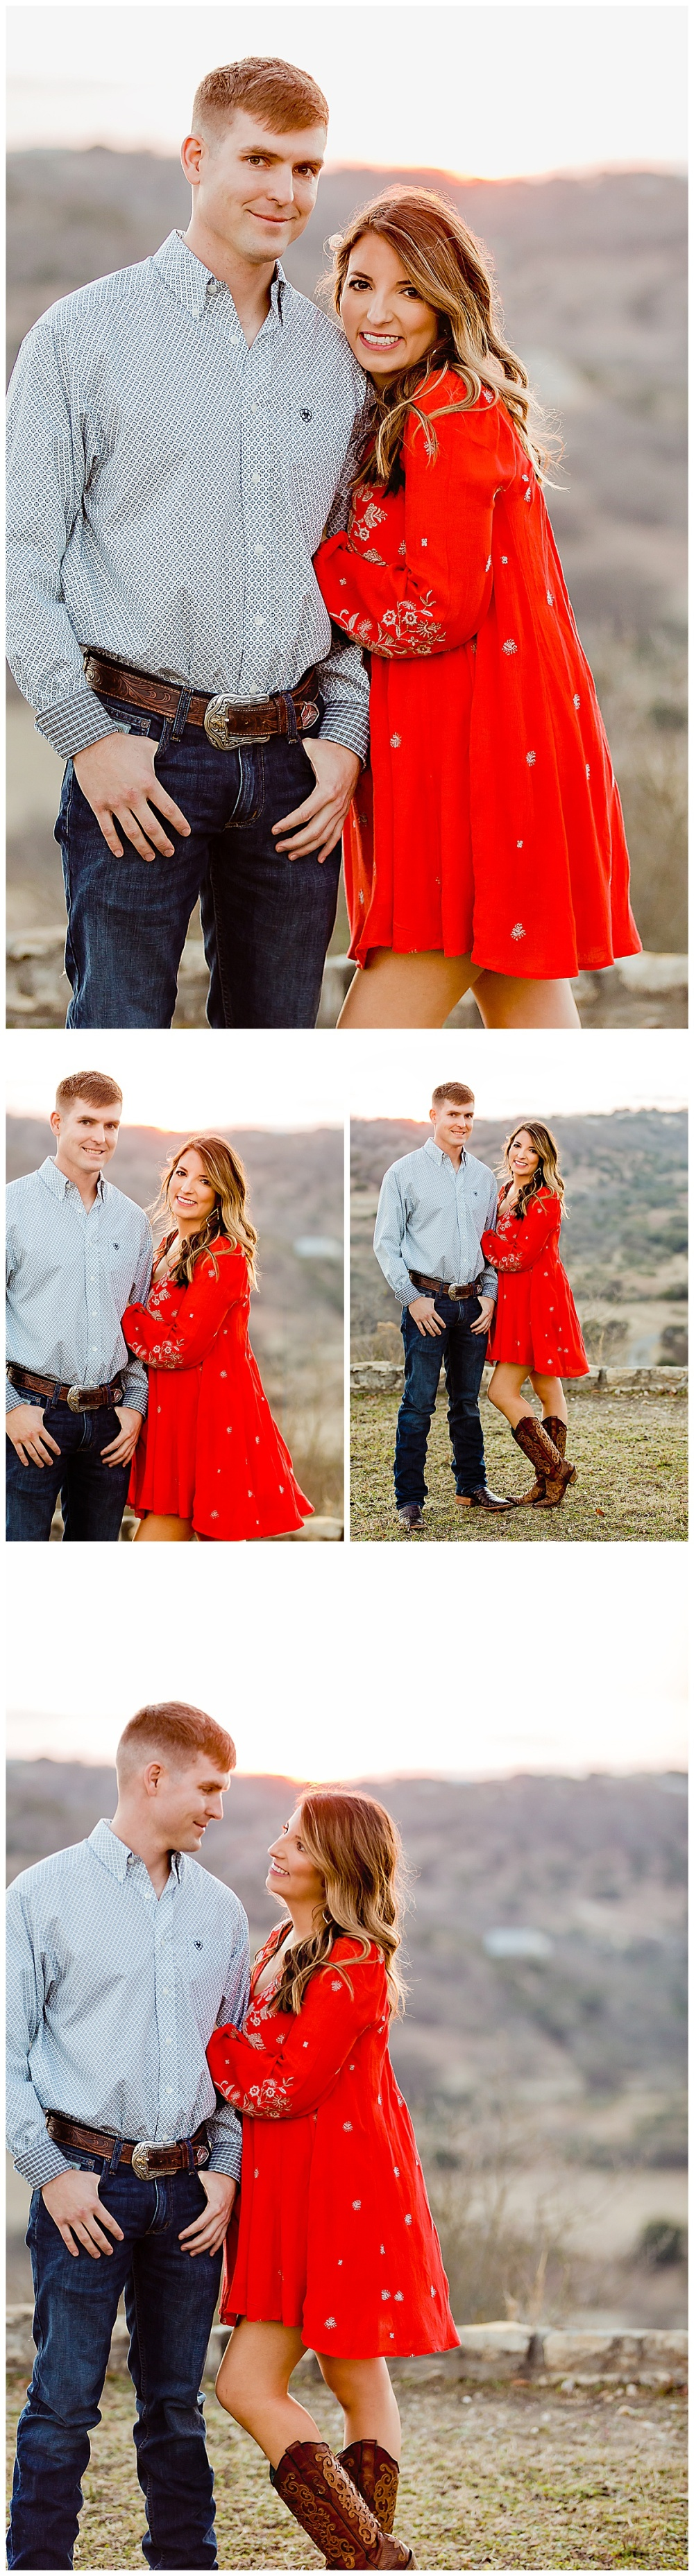 South-Texas-Wedding-Photographer-Engagement-Photos-Happy-H-Ranch-Comfort-Texas-Sunset-Couples-Carly-Barton-Photography-Justin-Erica_0008.jpg